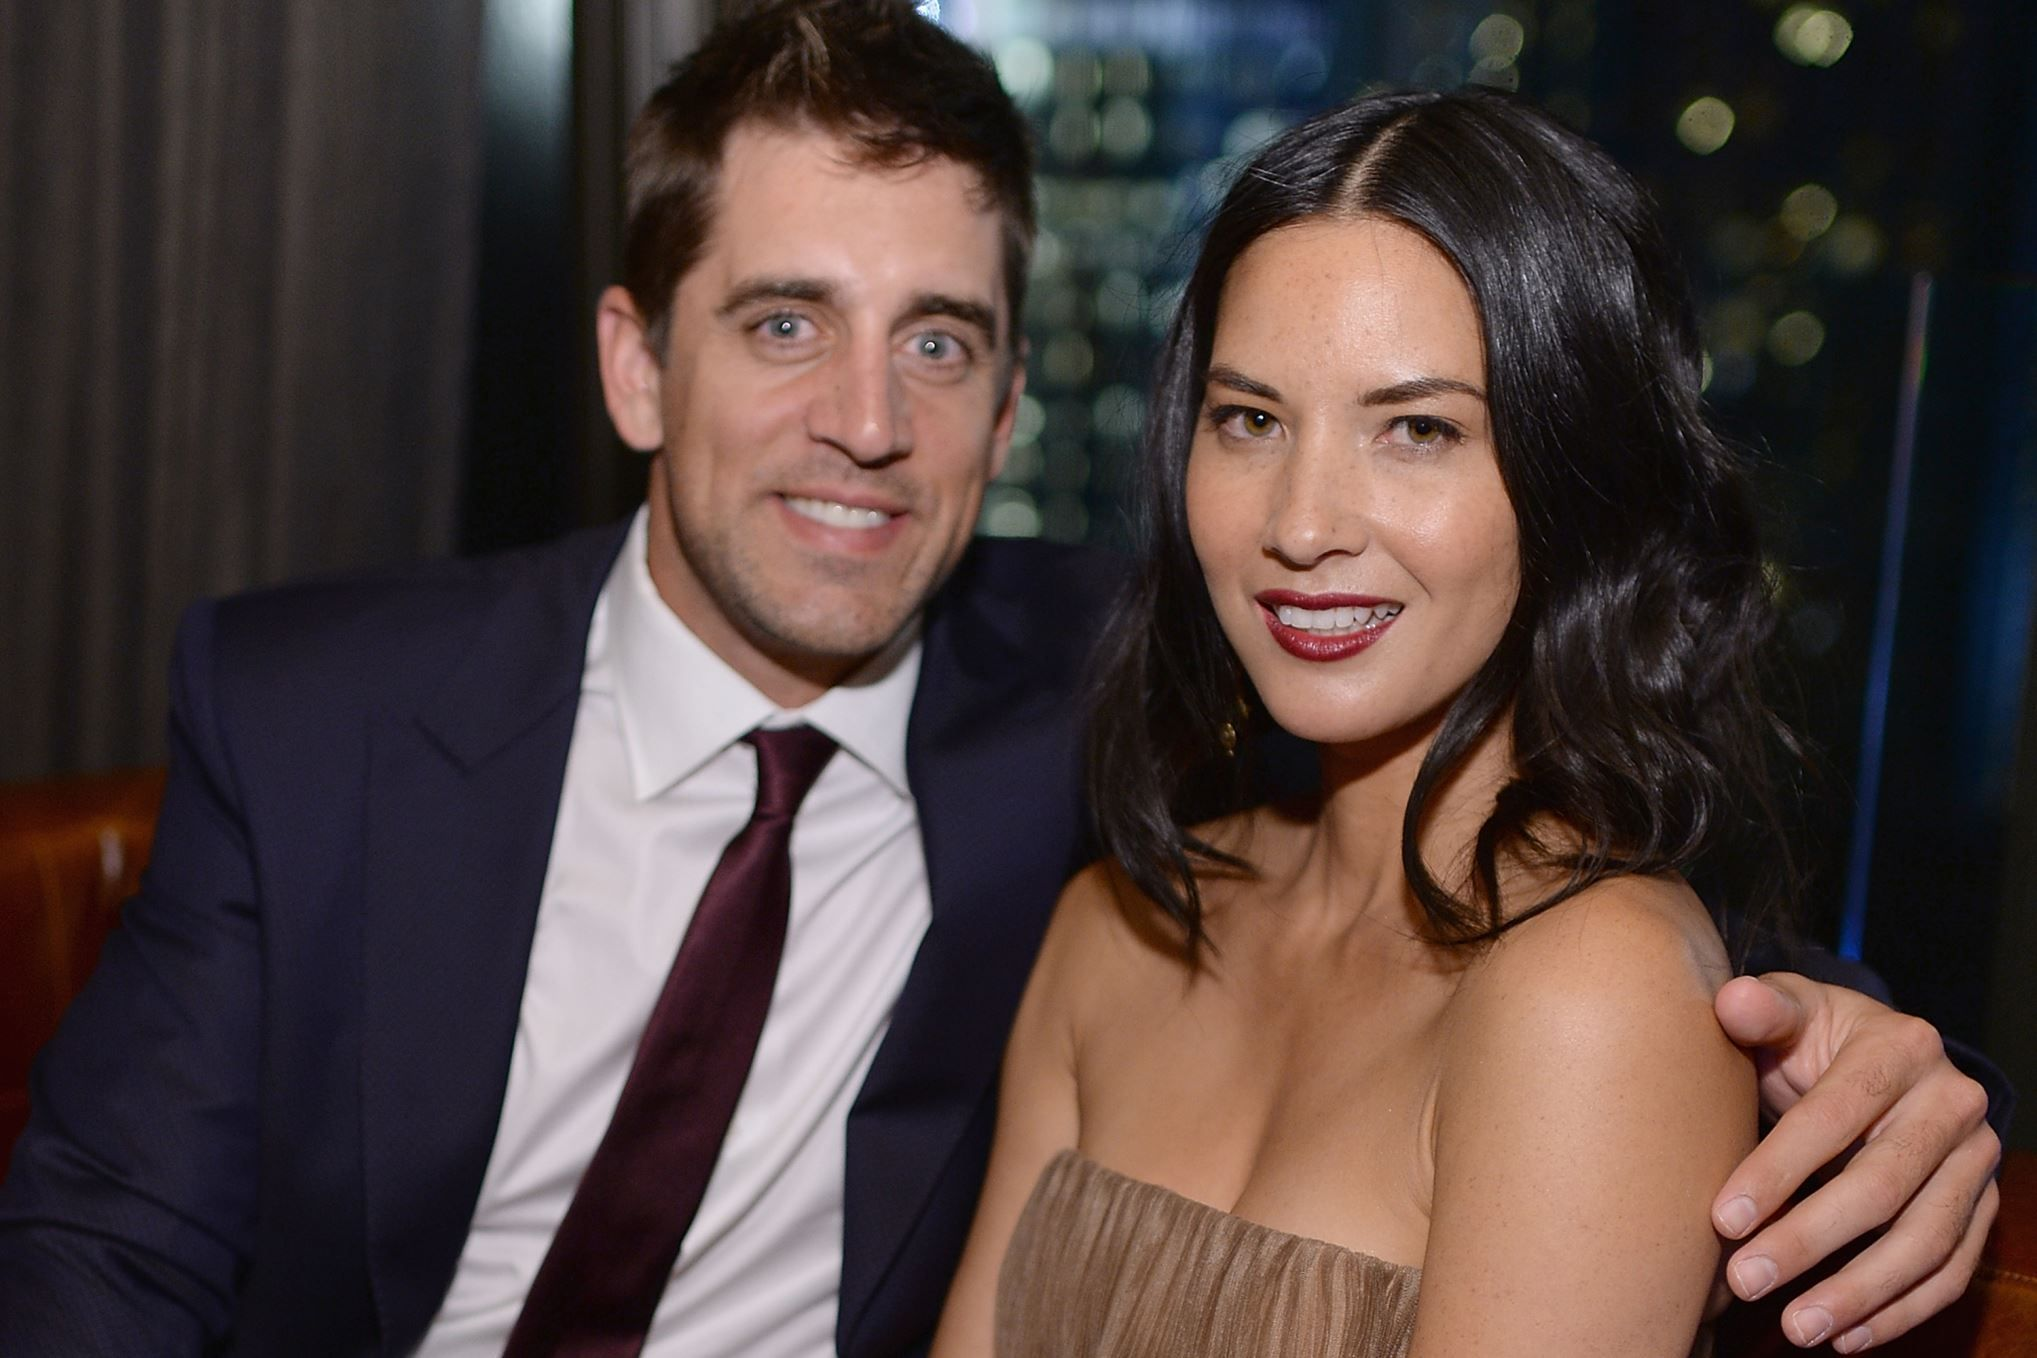 Nfl Wives And Girlfriends Nfl Wives Olivia Munn Celebrity Facts